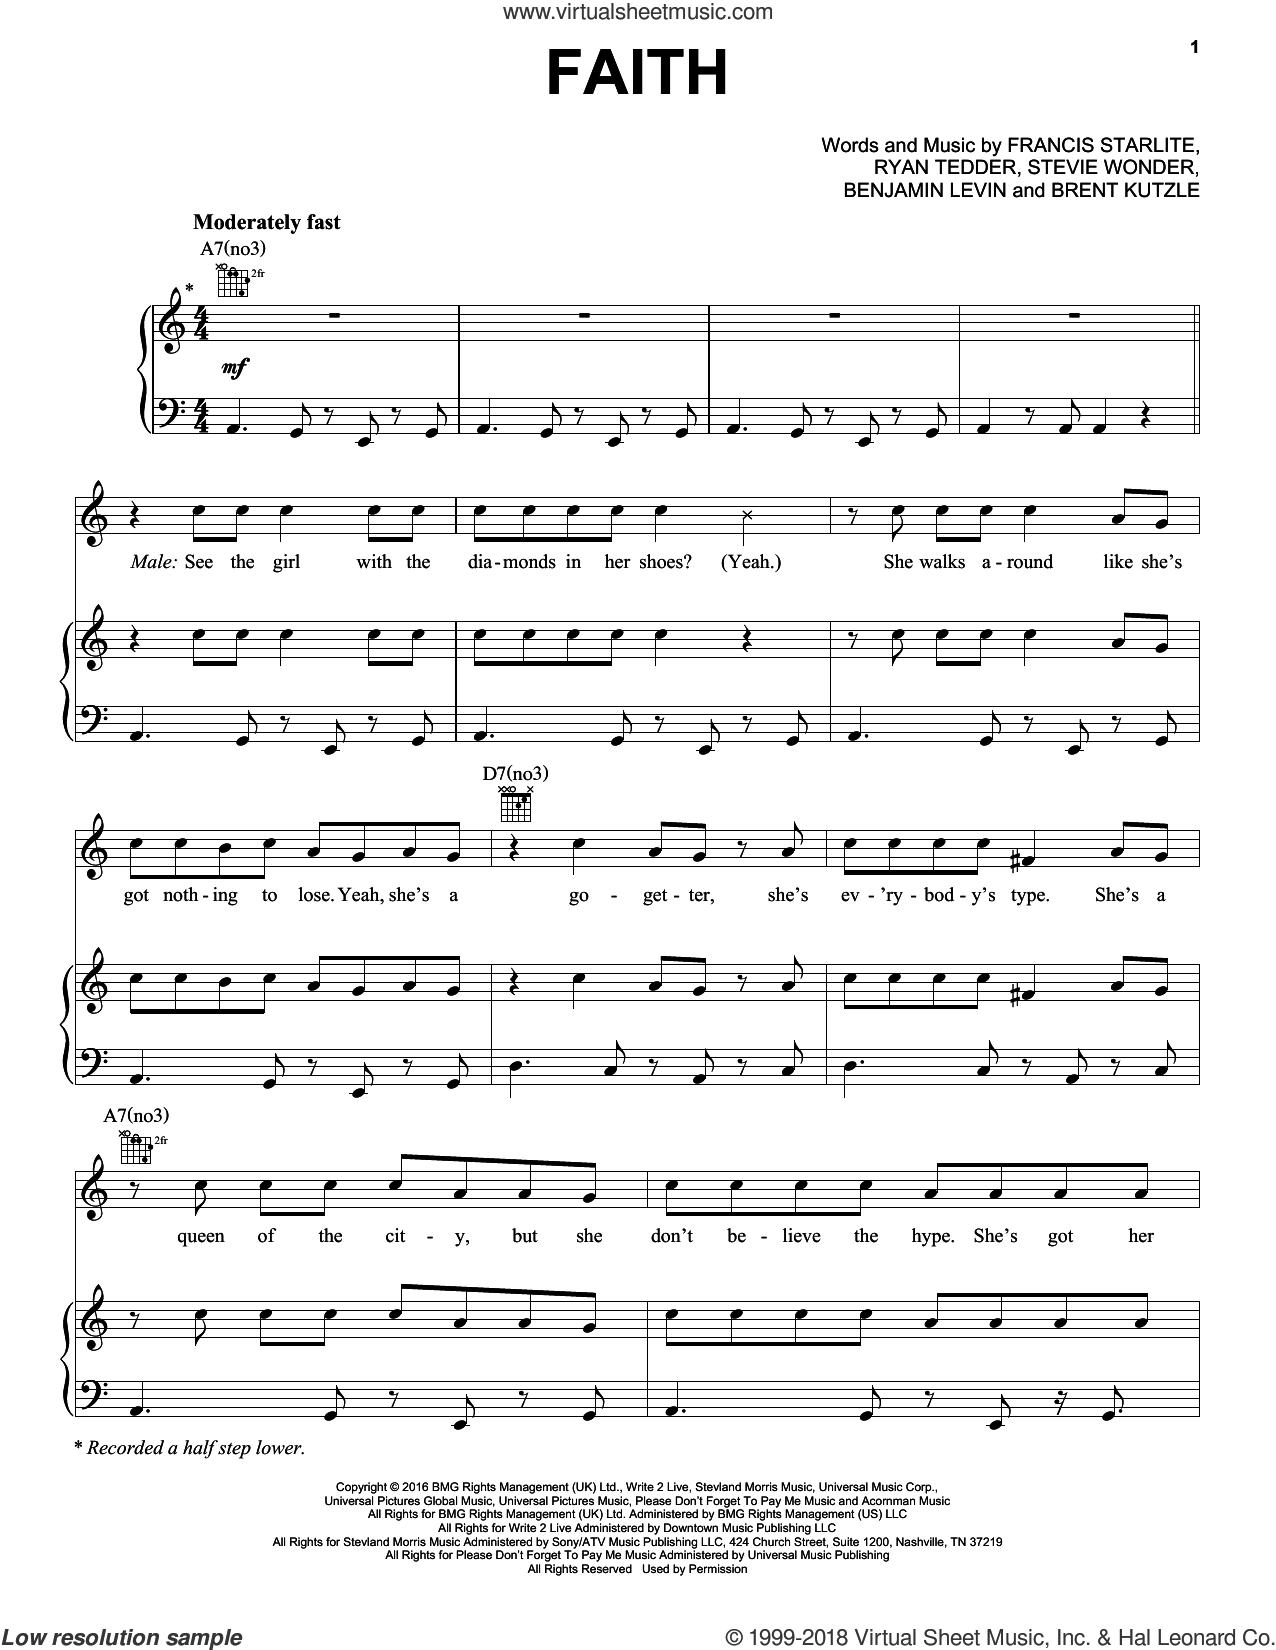 Faith sheet music for voice, piano or guitar by Stevie Wonder feat. Ariana Grande, Benny Blanco, Brent Kutzle, Francis Farewell Starlite, Ryan Tedder and Stevie Wonder, intermediate skill level